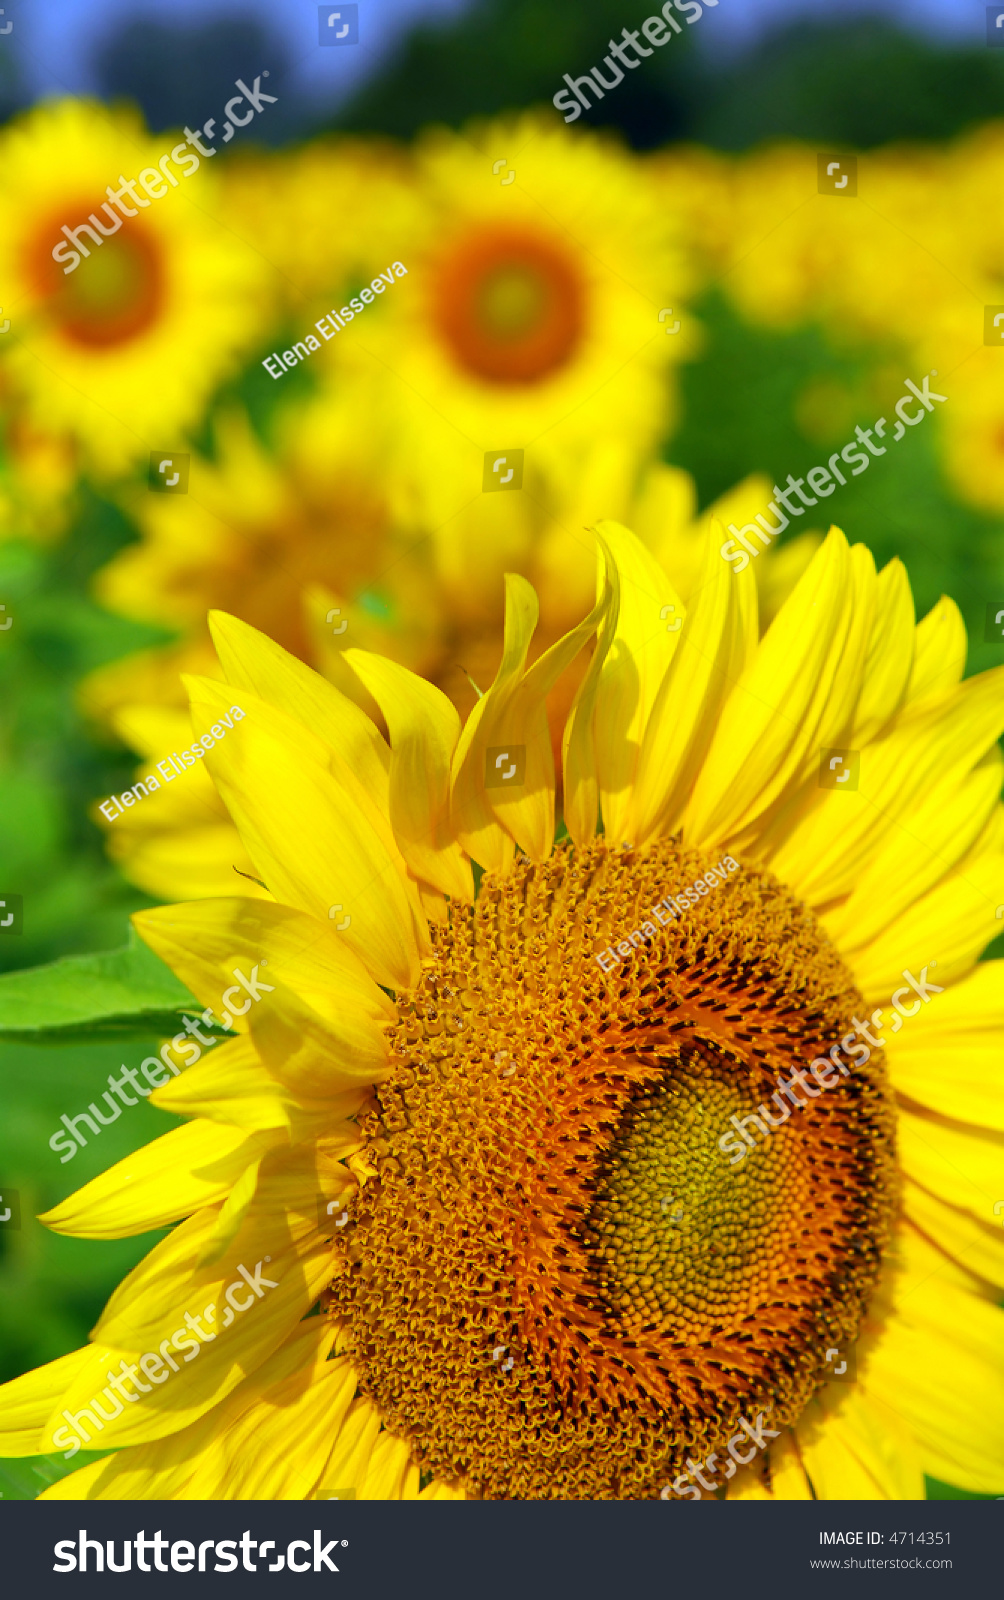 sunflower field picture blooming - photo #32